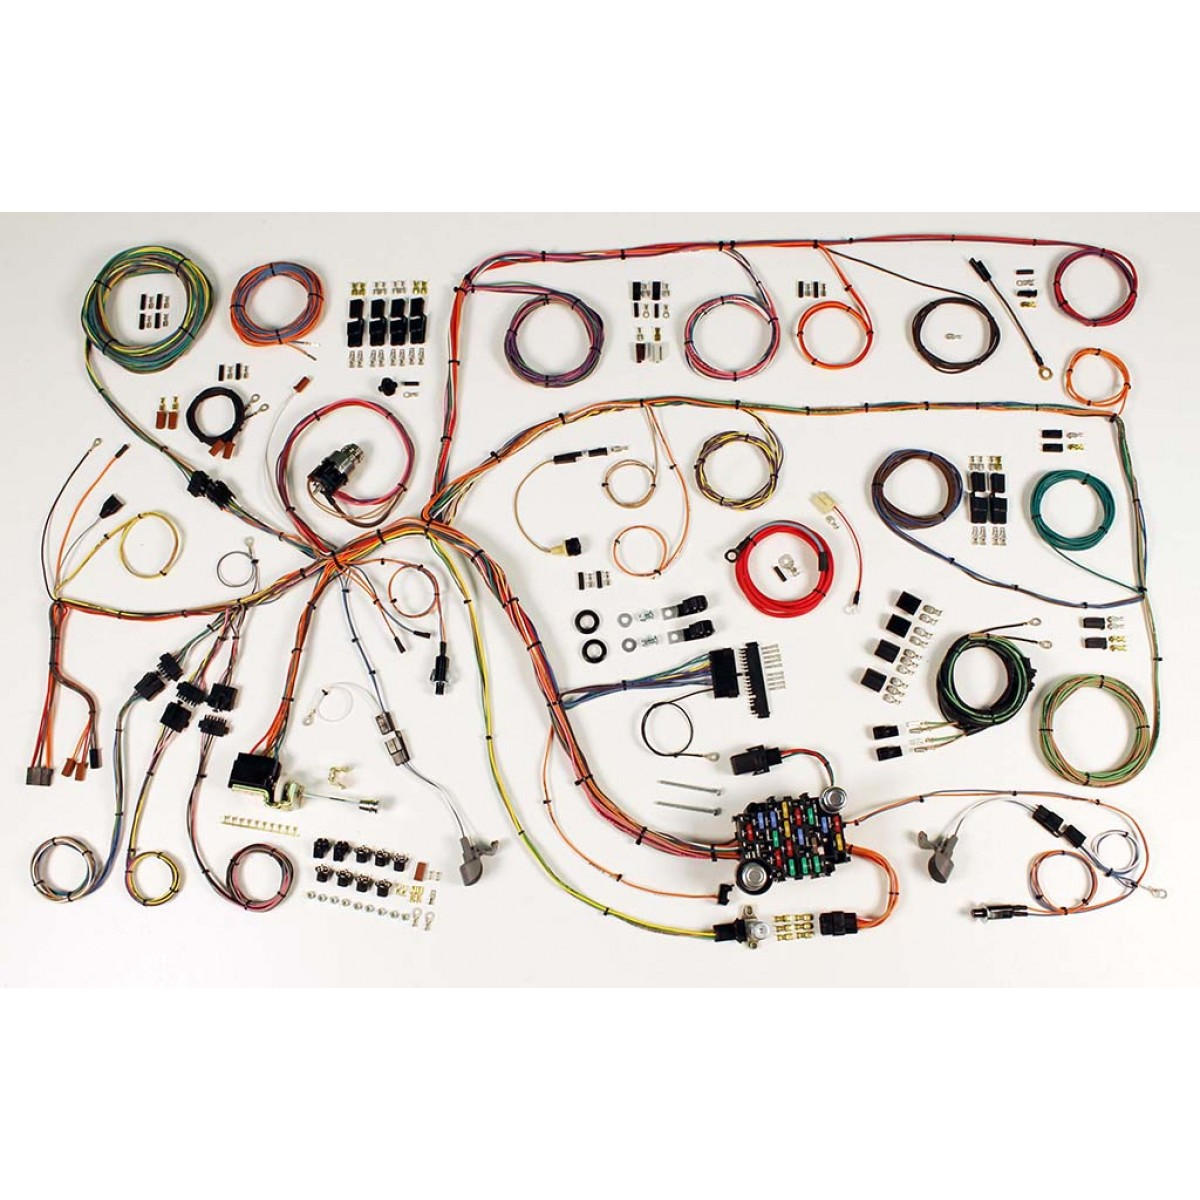 1960 1964 Ford Falcon Complete Wiring Harness Kit Wire Cover 1965 Mercury Comet Part 510379